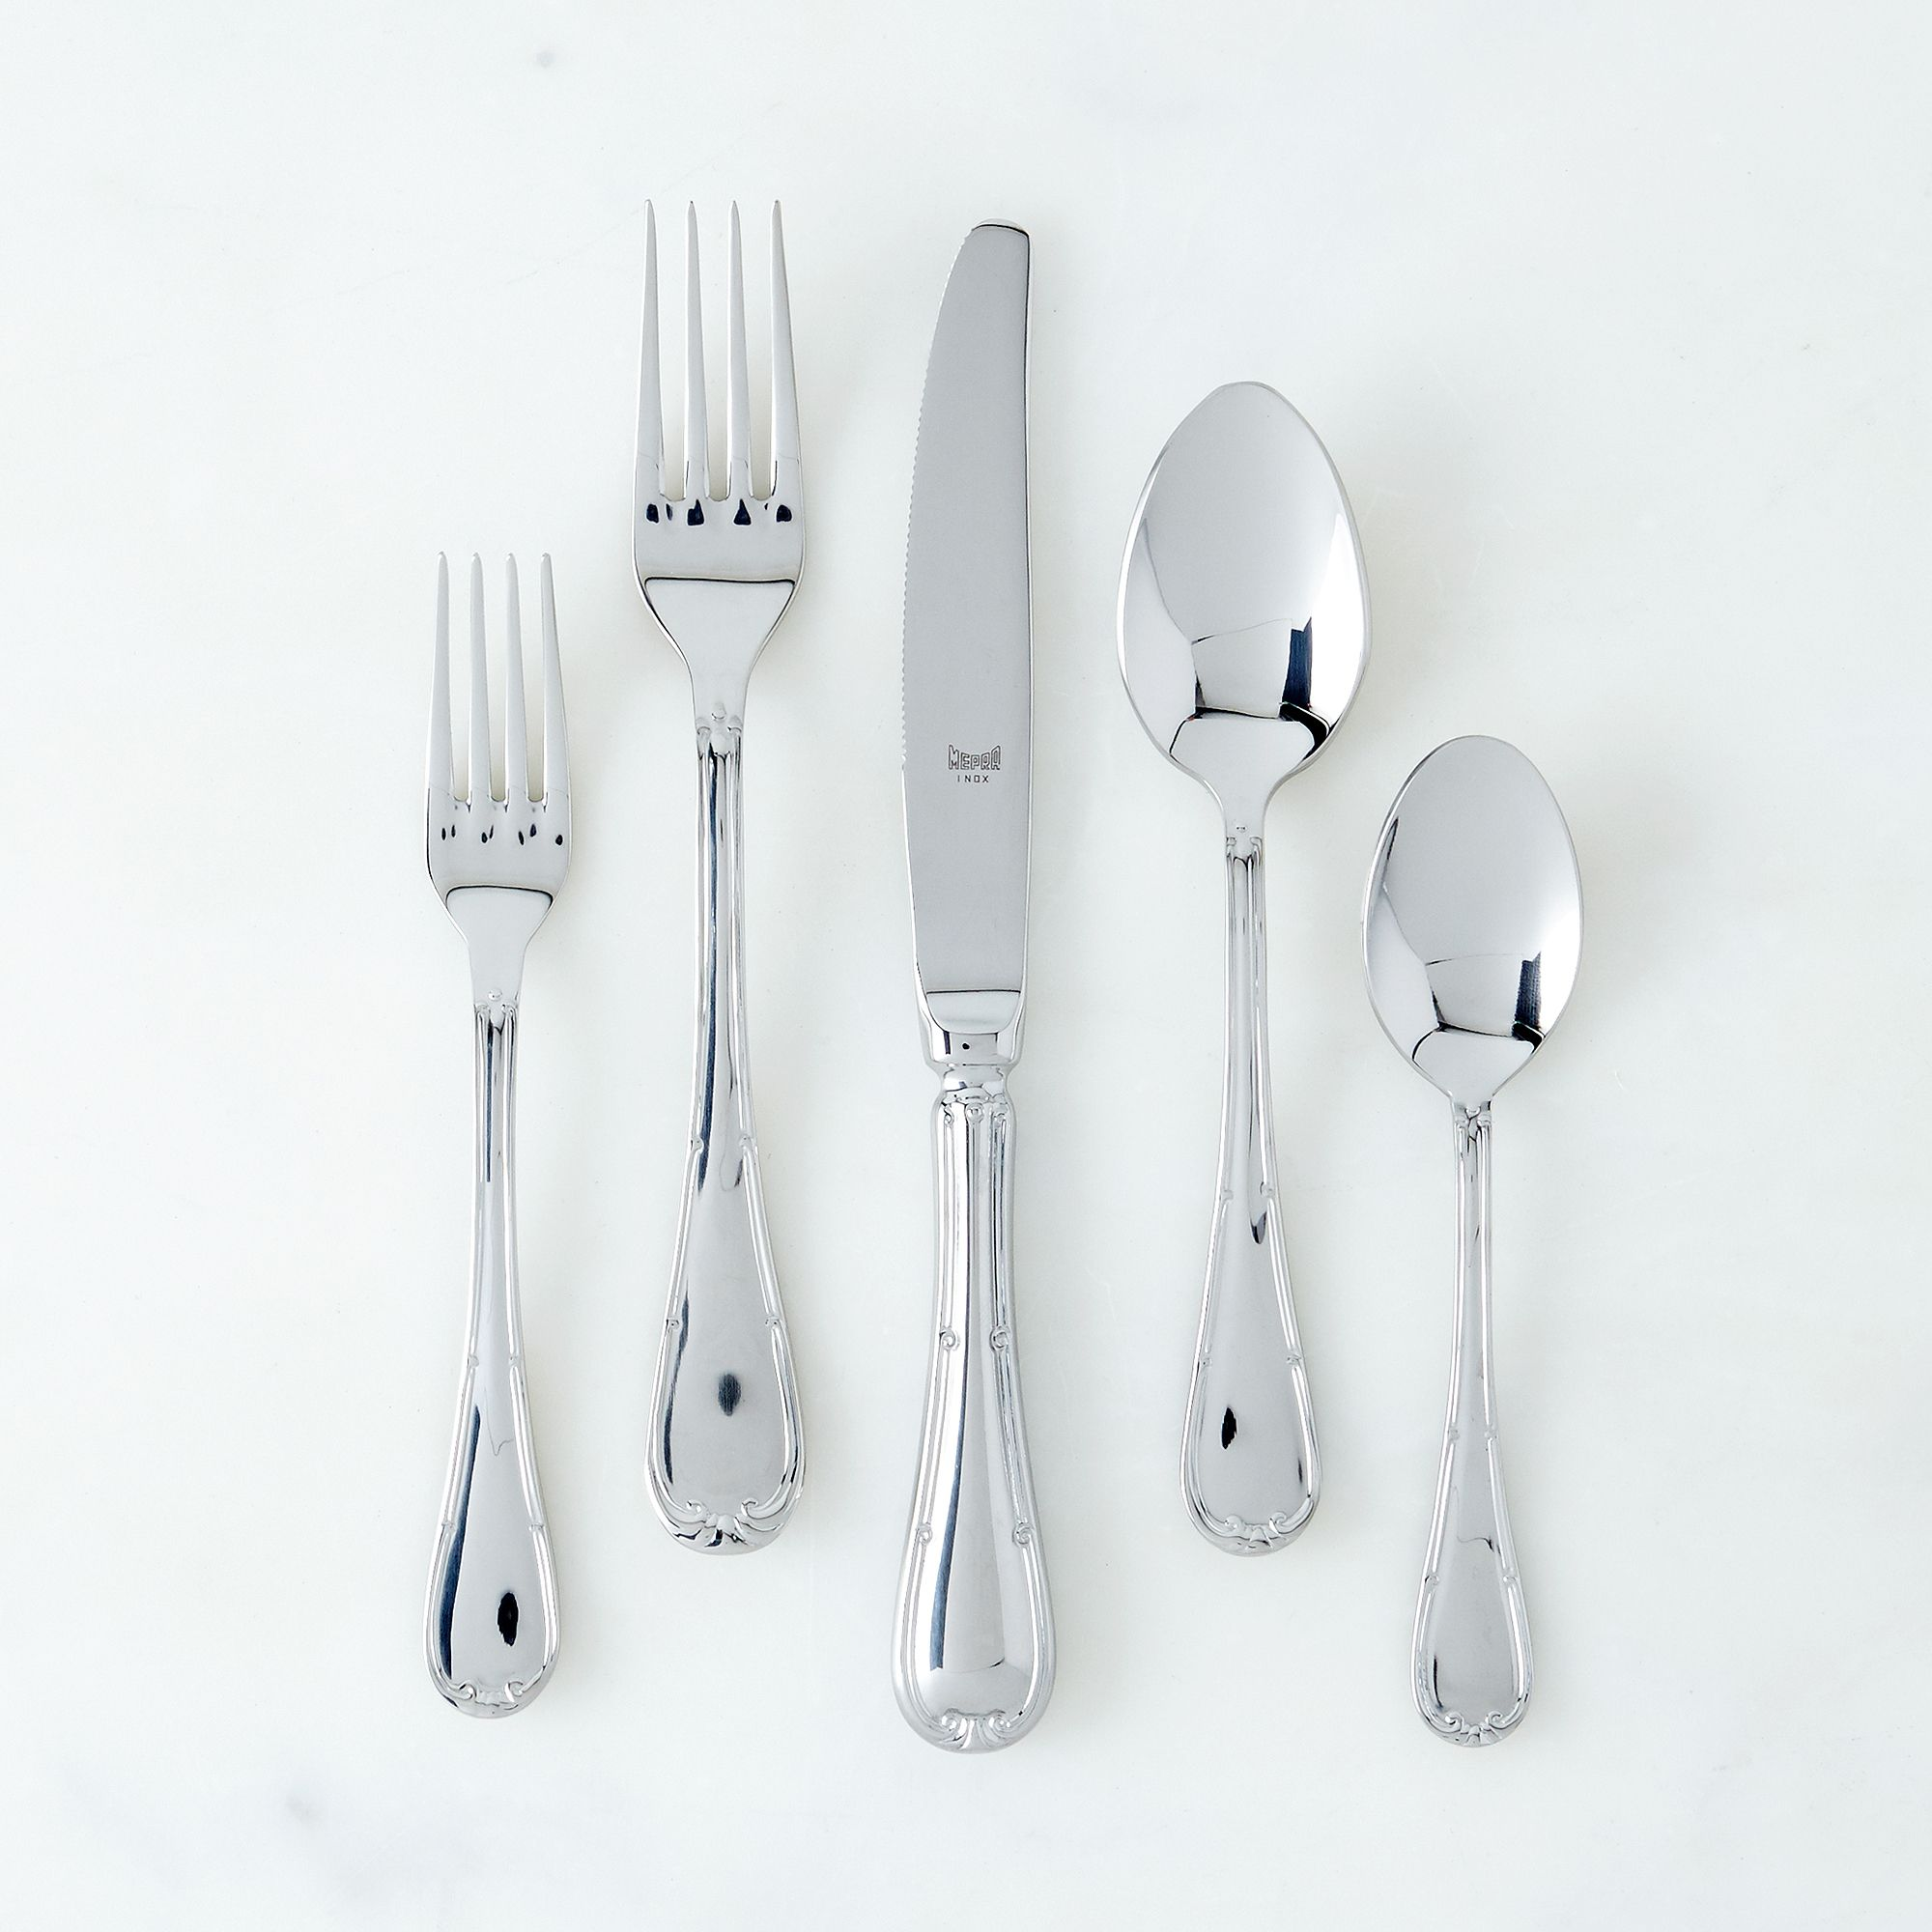 Italian Flatware, Raffaelo Ss Shine (5-piece Flatware Place Setting)